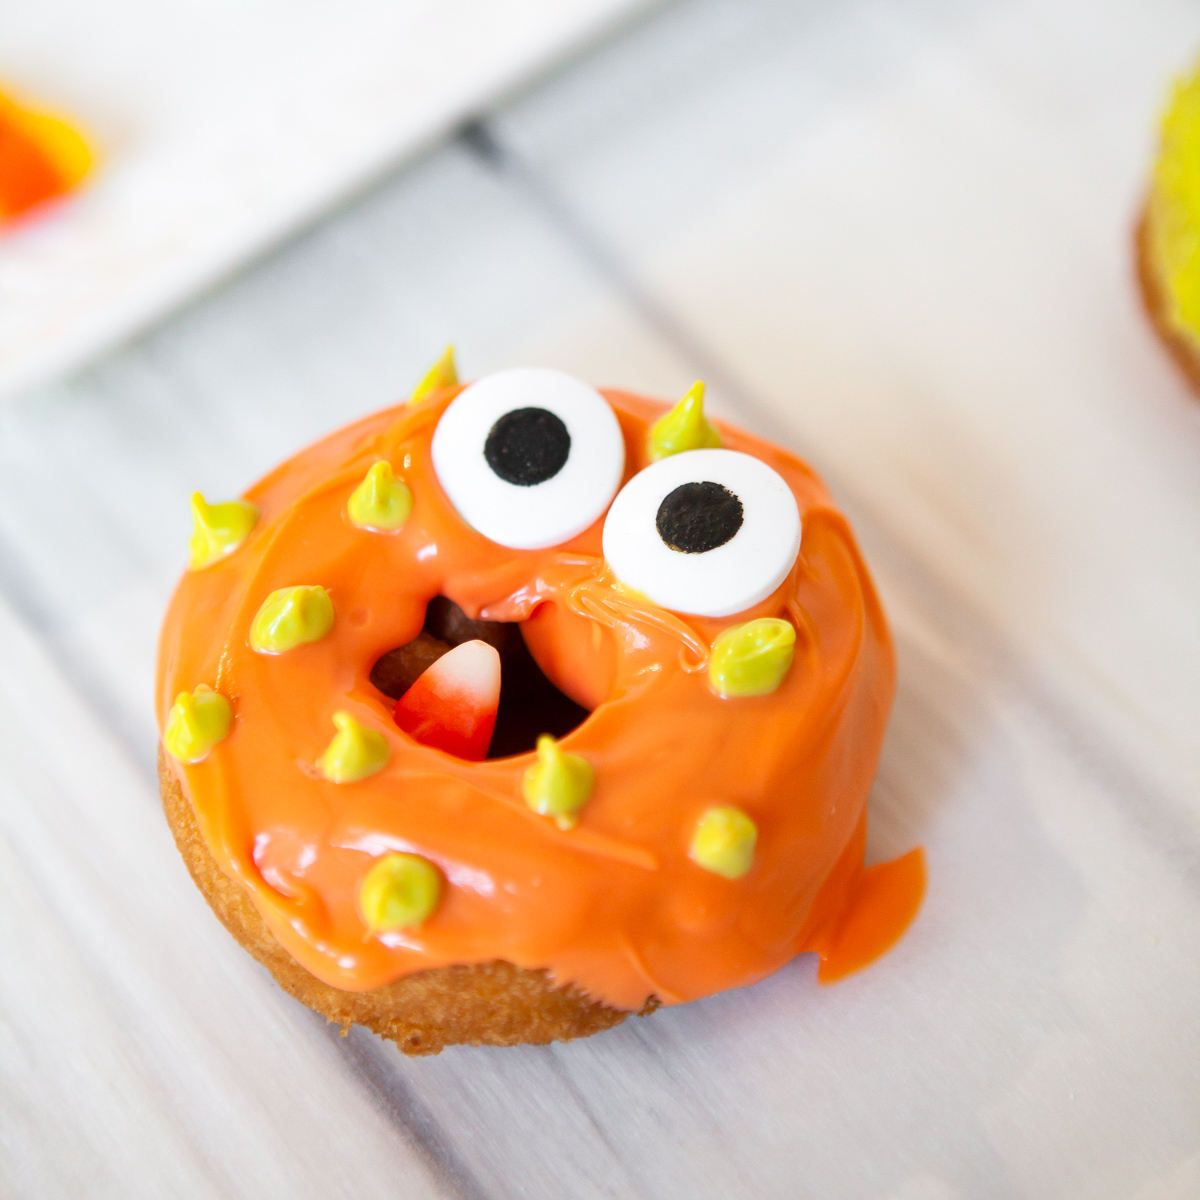 Halloween monster donut with eyes